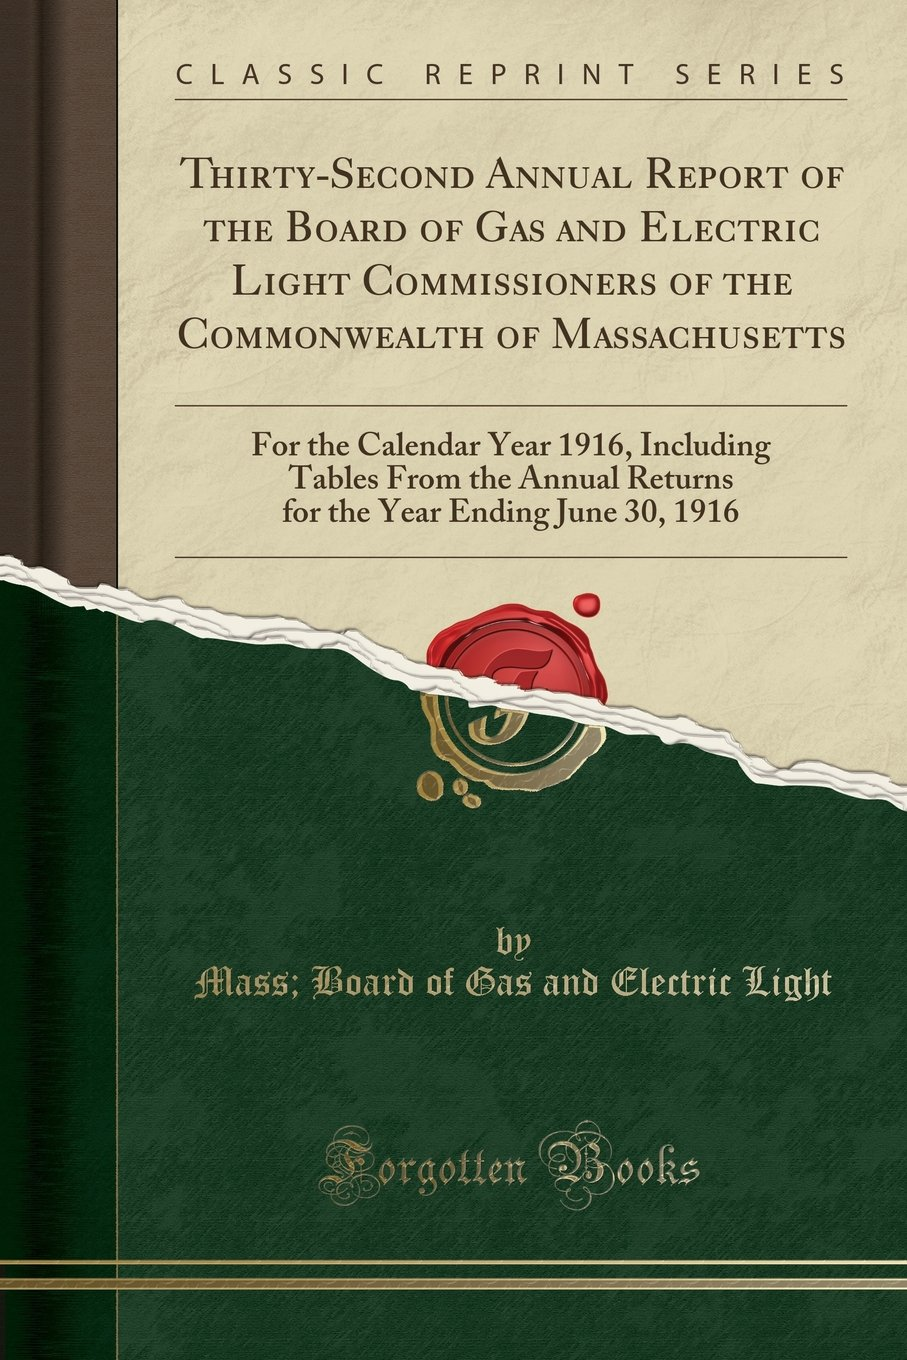 Thirty-Second Annual Report of the Board of Gas and Electric Light Commissioners of the Commonwealth of Massachusetts: For the Calendar Year 1916, ... Year Ending June 30, 1916 (Classic Reprint) ebook